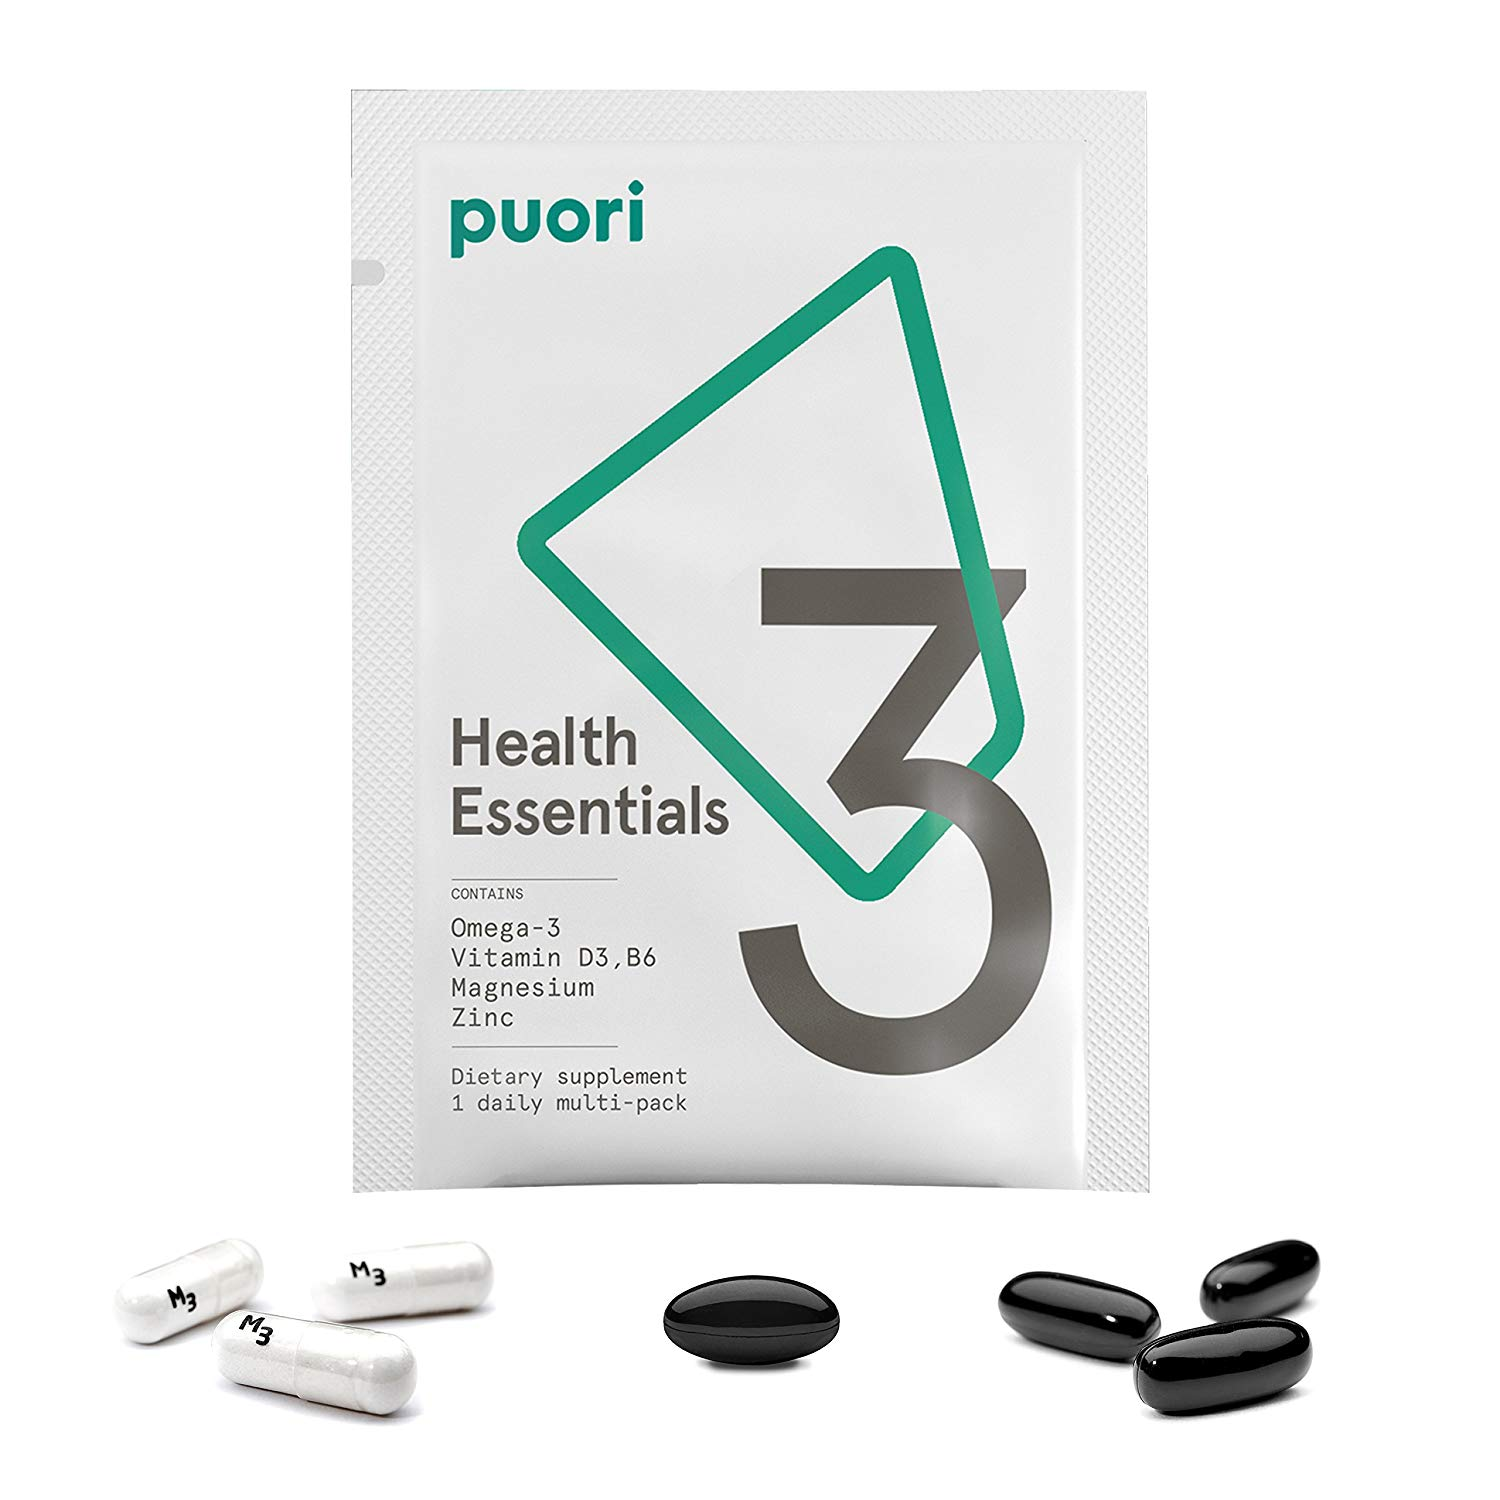 Image of P3 Health Essentials